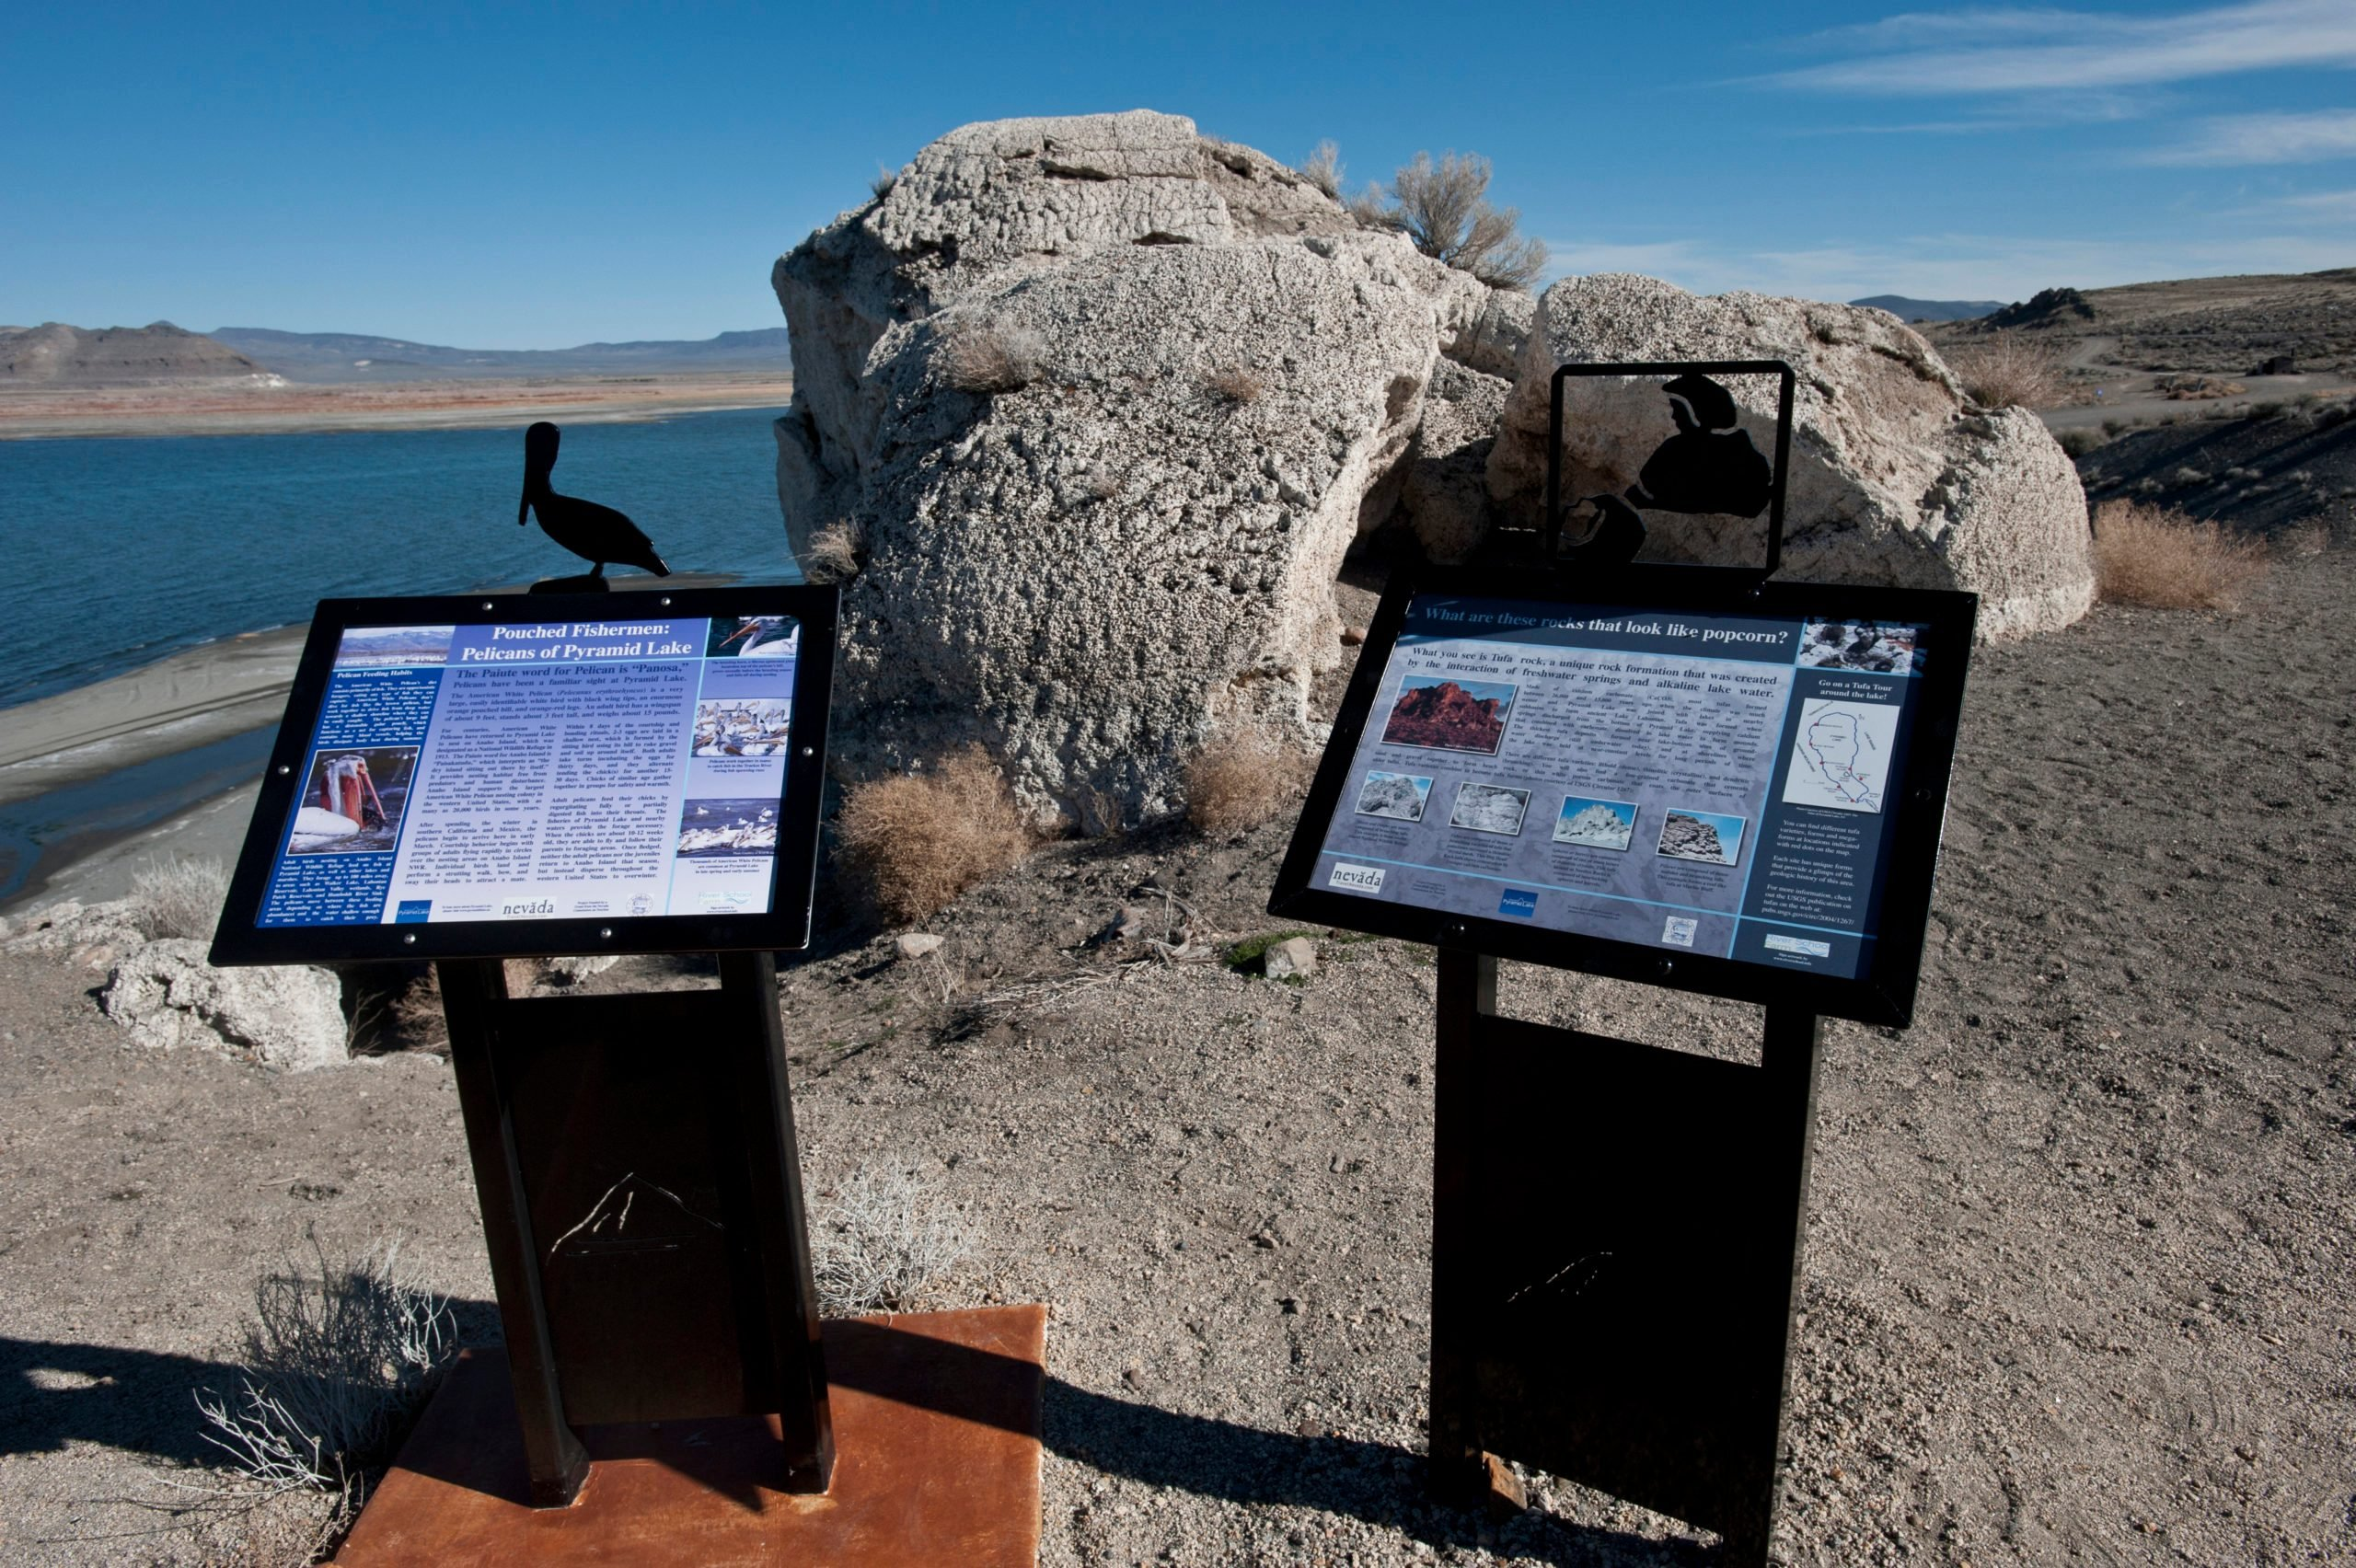 Nevada, Nixon, Pyramid Lake showing Overlook with informational signs